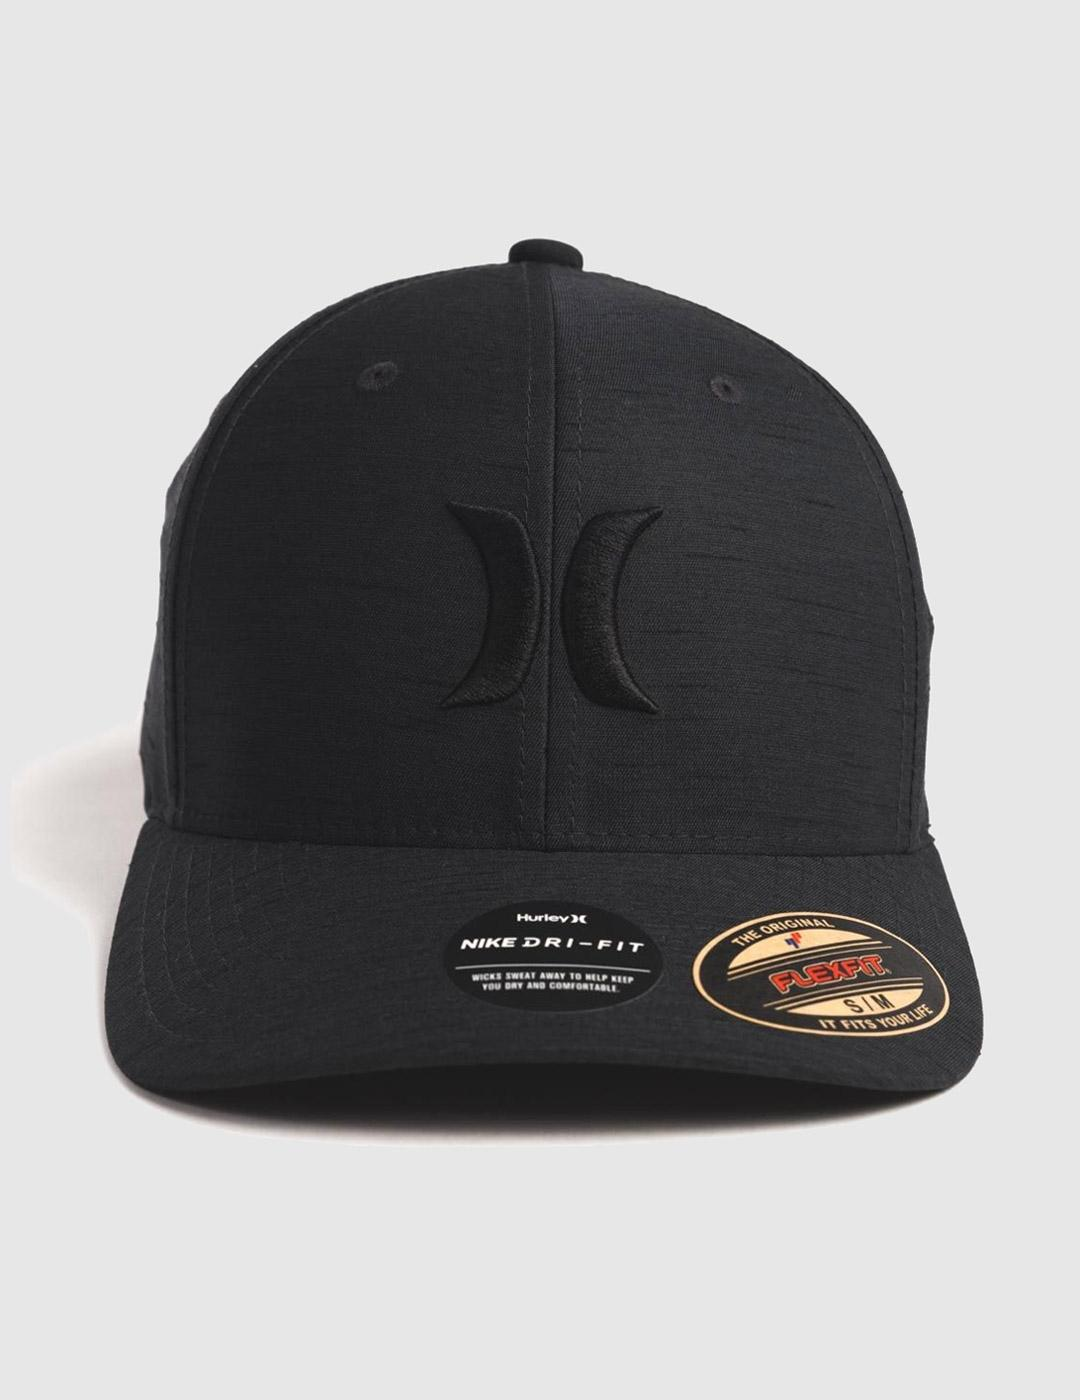 Gorra Hurley H20 DRI MARWICK ICON - Black Heather